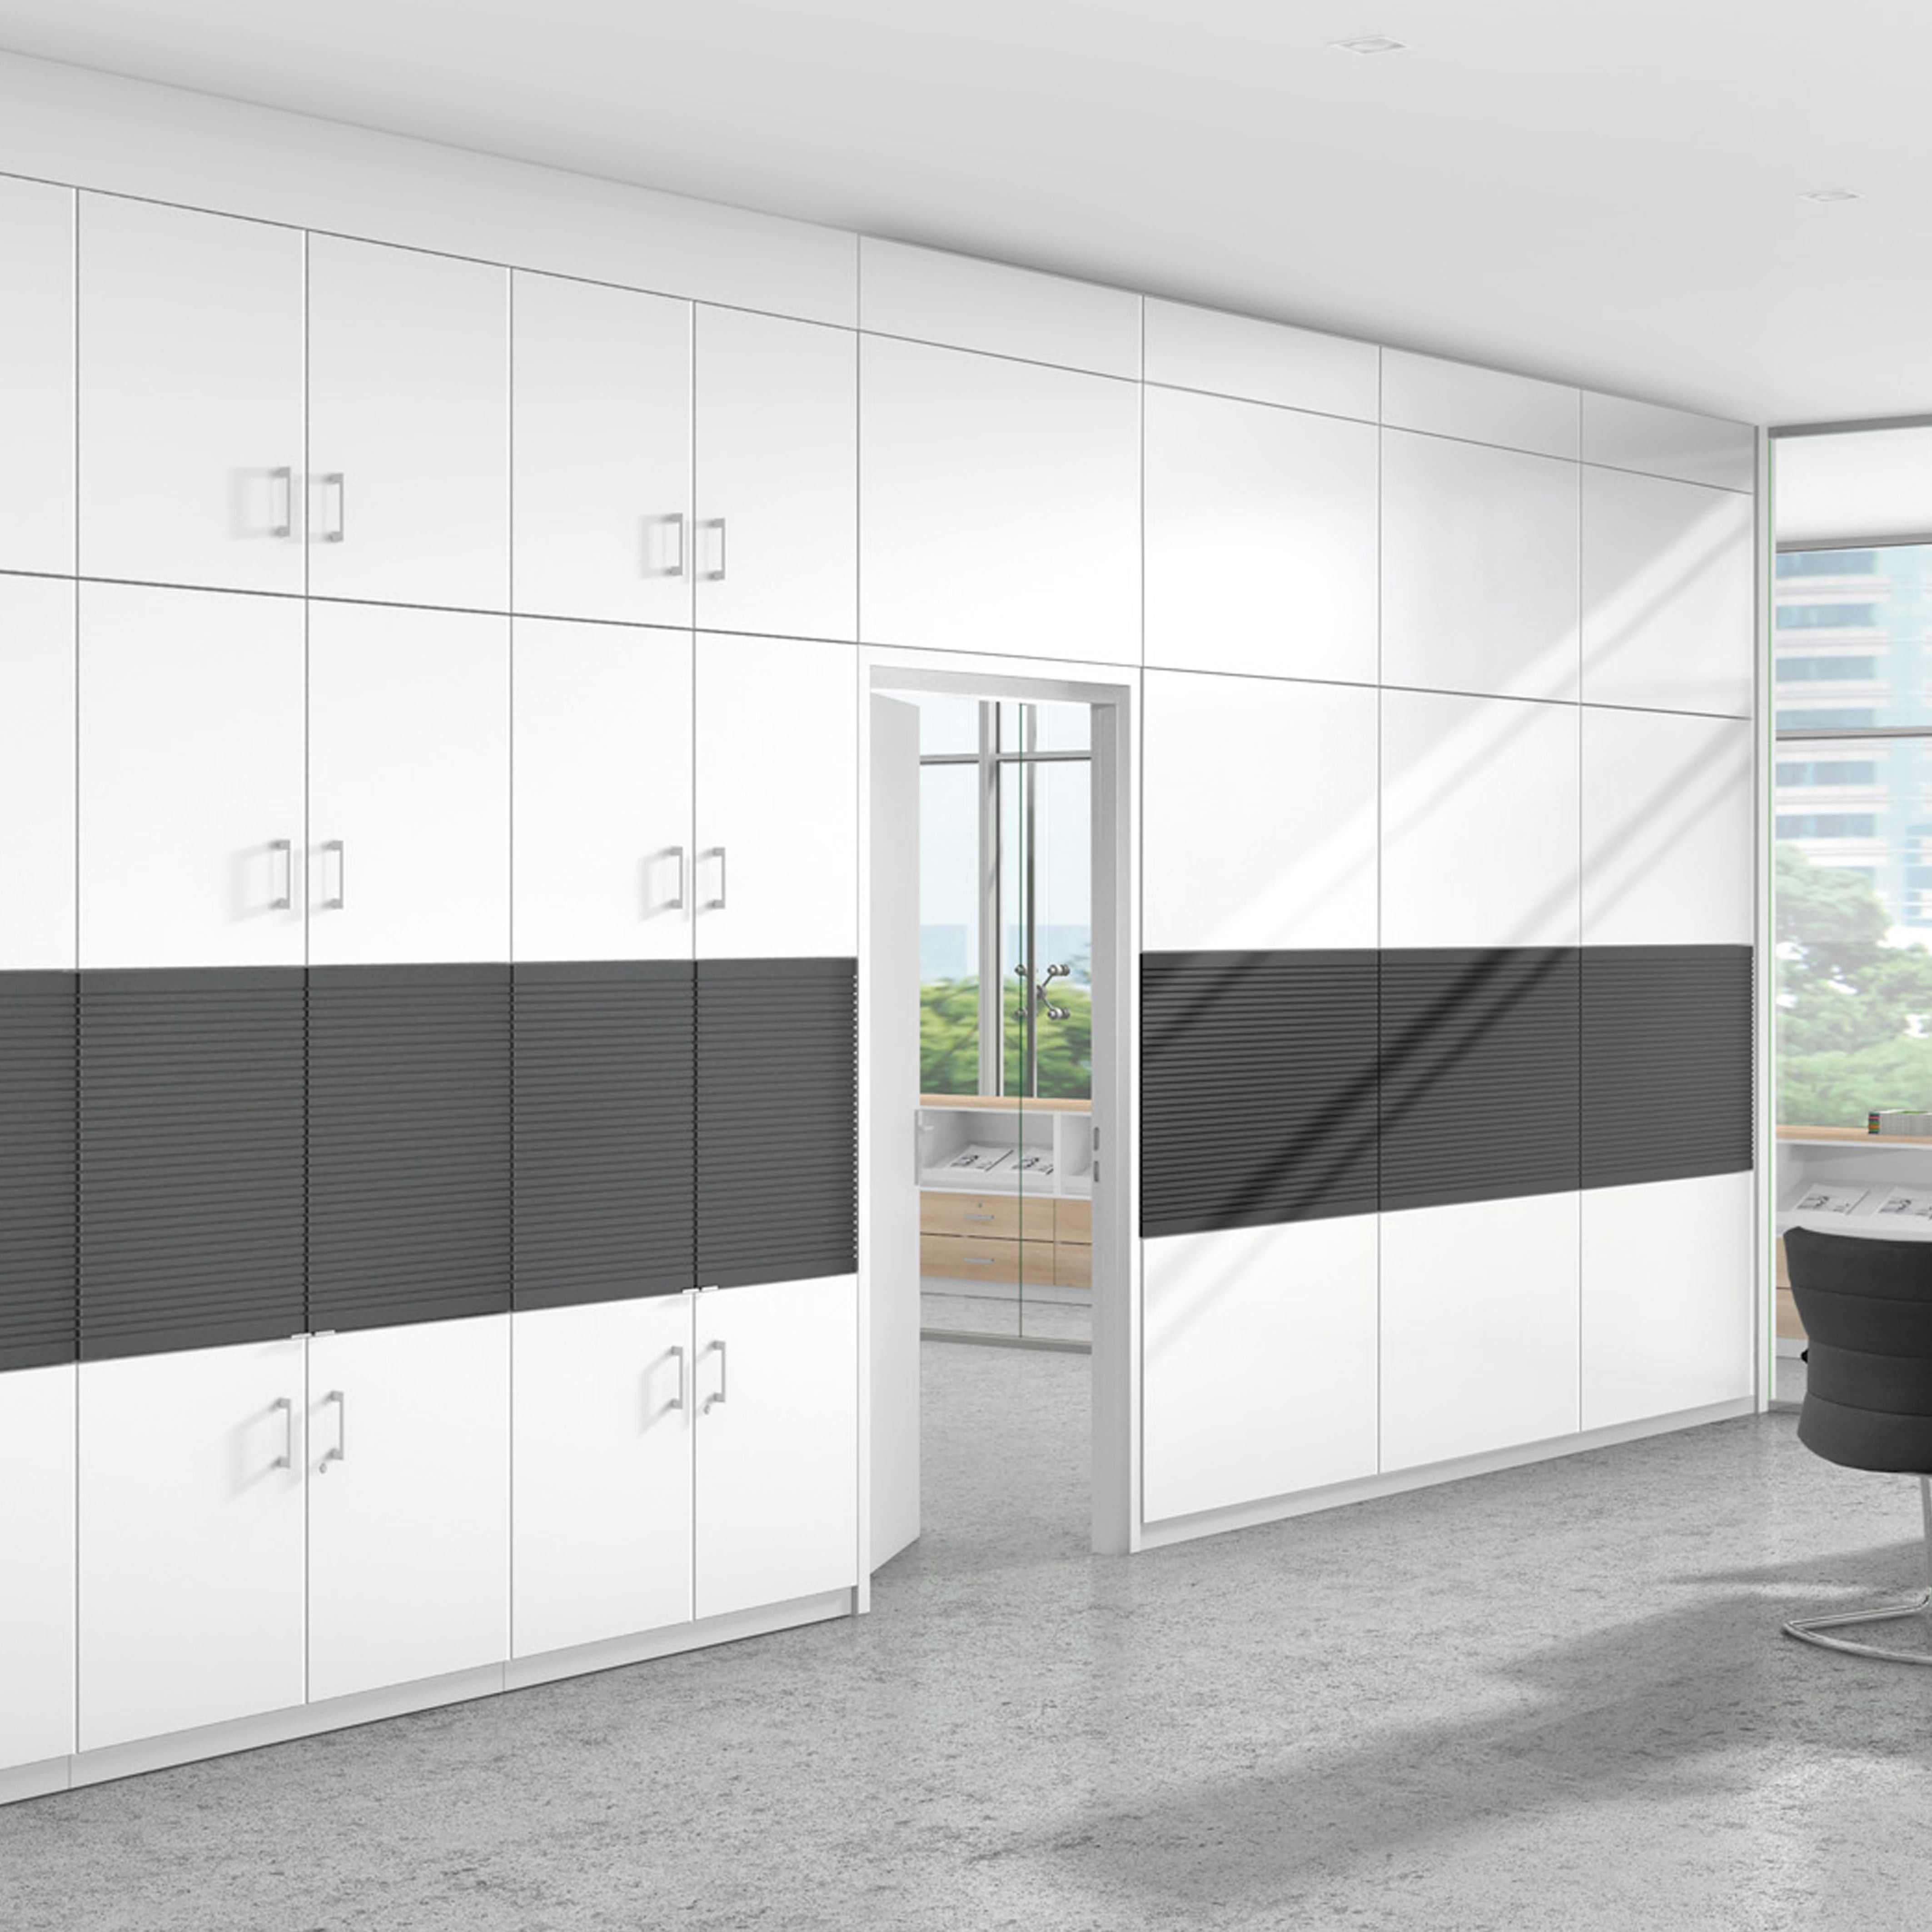 Allvia Storage System Has Office Storage Covered, From Storagewall Solutions